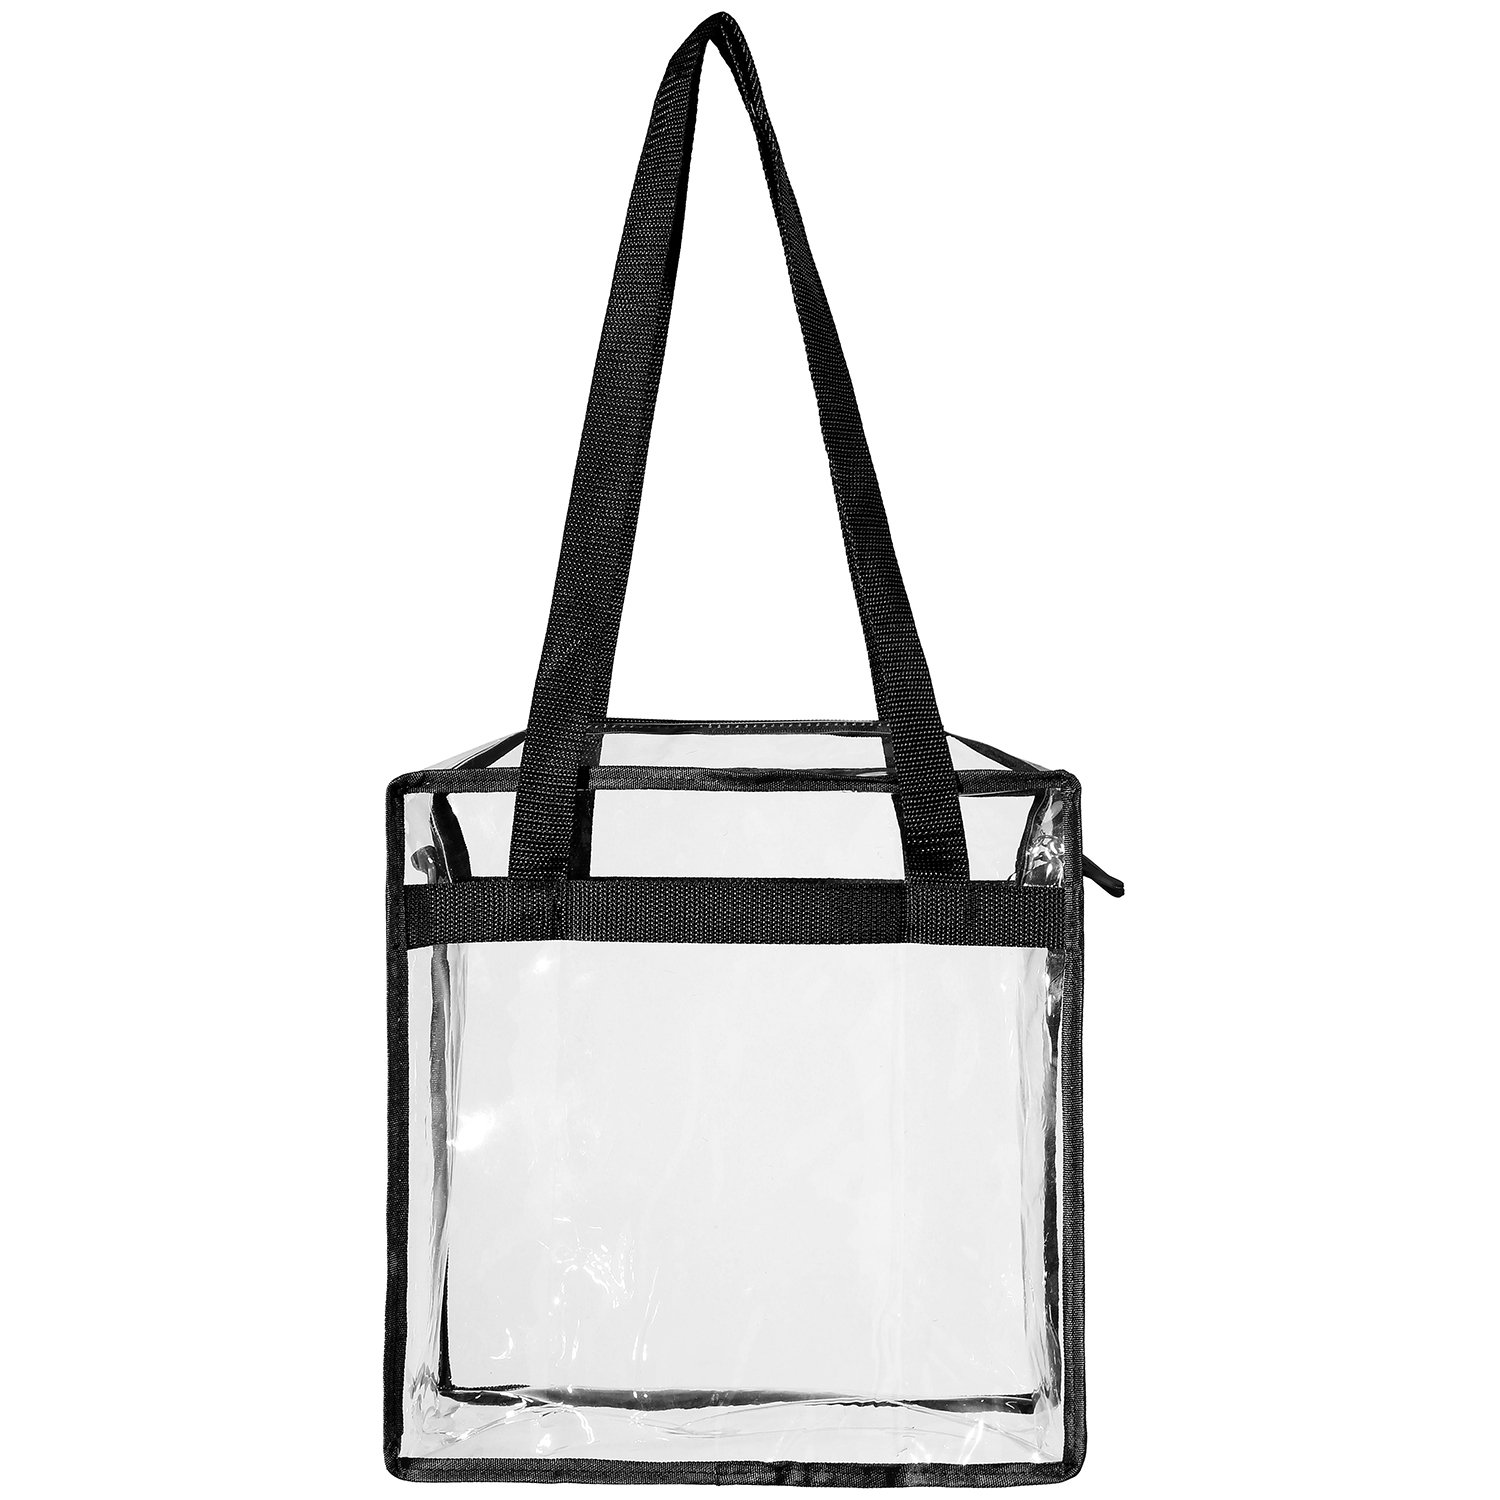 "Clear Bags NFL & PGA Stadium Approved - The Clear Tote Bag with Zipper Closure is Perfect for Work, Sports Games.Cross-Body Messenger Shoulder Bag w Adjustable Strap -12"" X 12"" X 6"" (Two Bag) by BAGAIL (Image #5)"